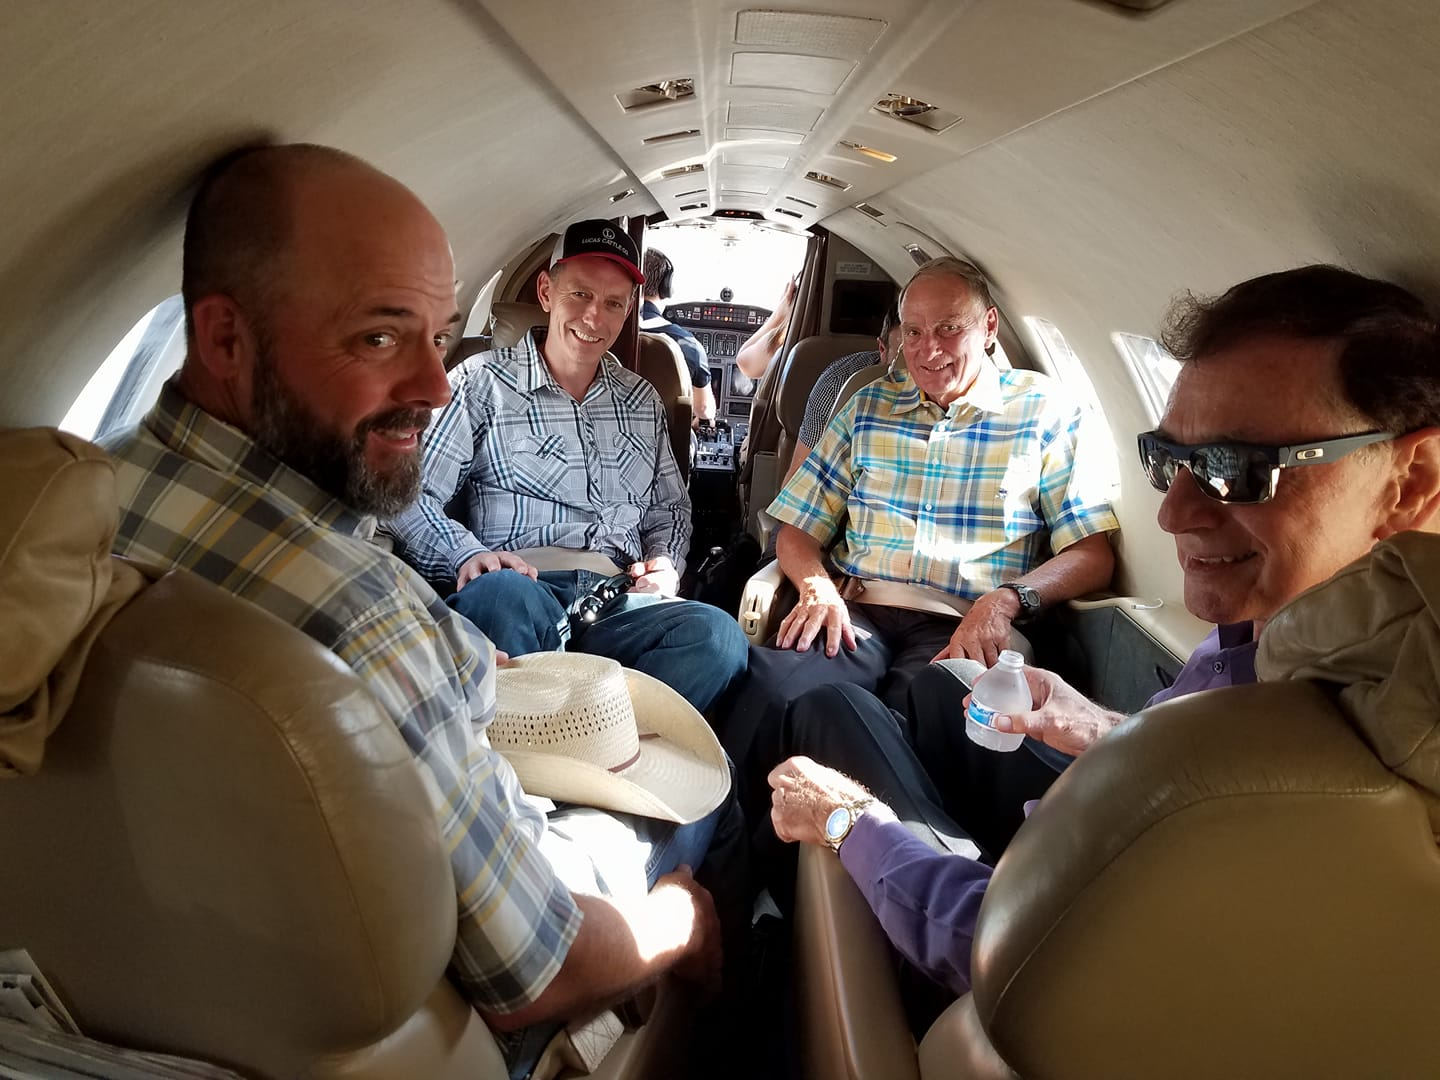 From his nonprofit's Facebook page (Protect the Harvest). Oil man Lucas gives pardoned arsonists Steven and Dwight Hammond a ride home to Burns, Ore. … in his company's private jet.